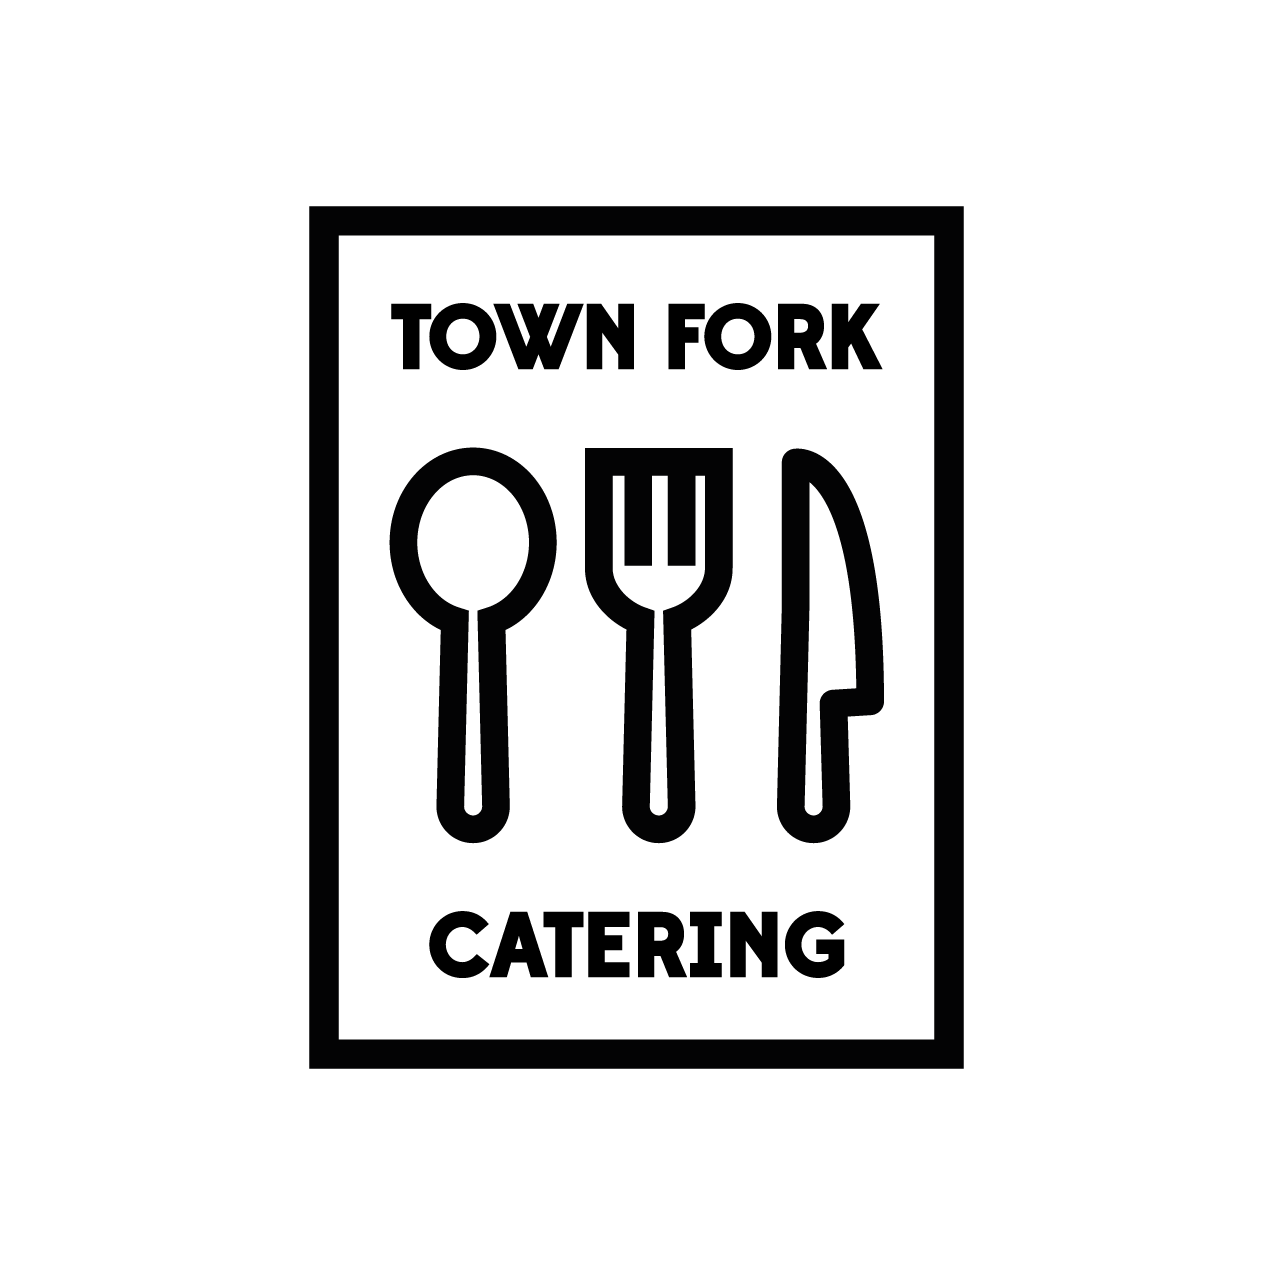 Town Fork Catering